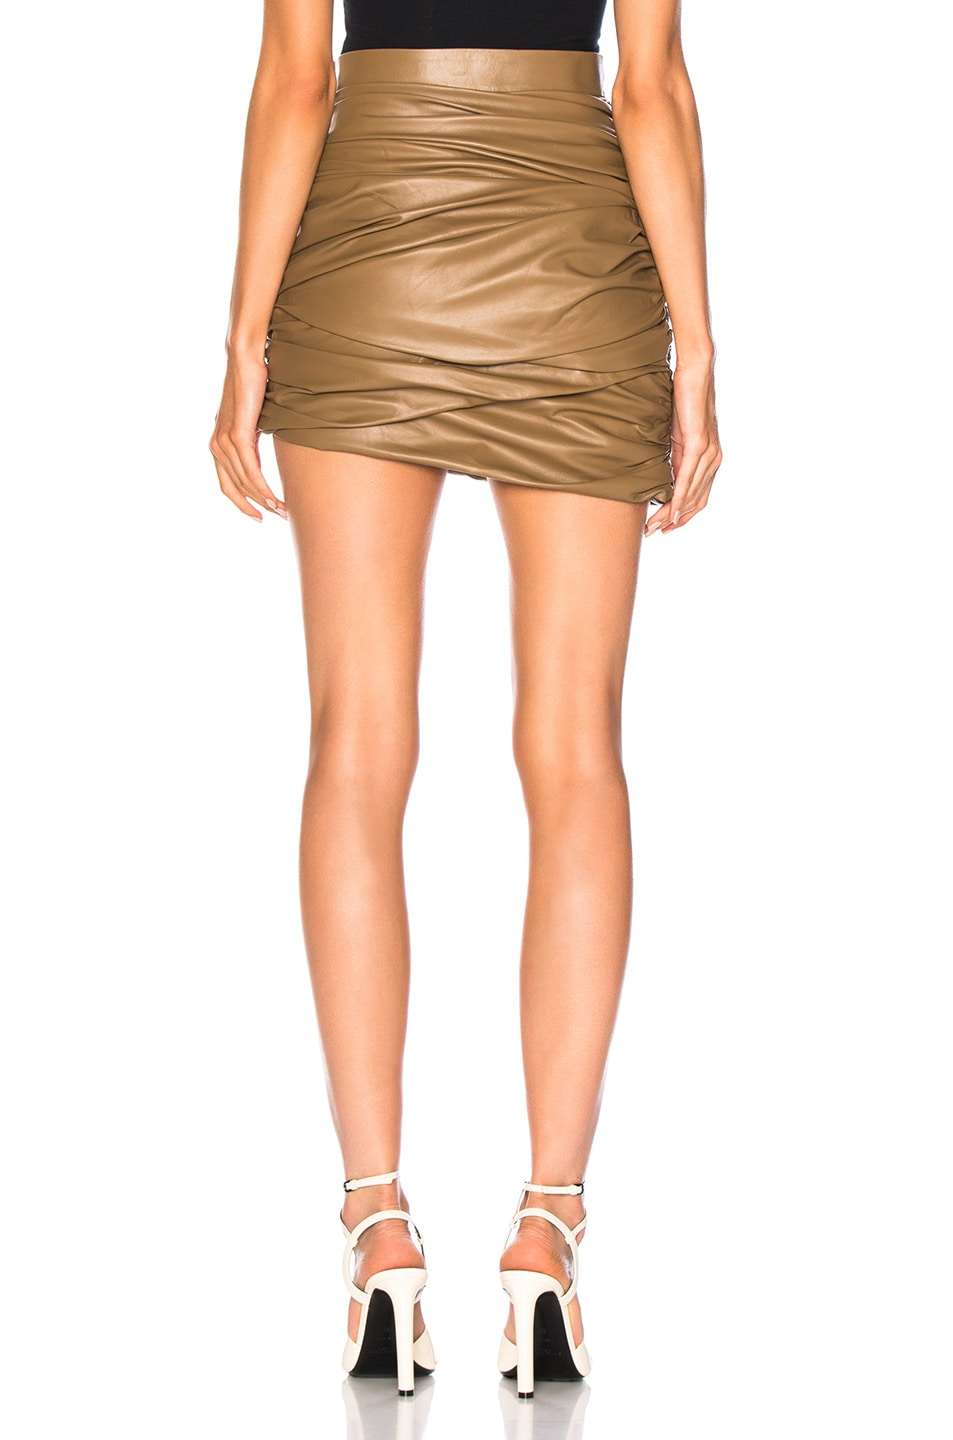 Image 3 of Zeynep Arcay for FWRD Draped Mini Leather Skirt in Creamy Coffee